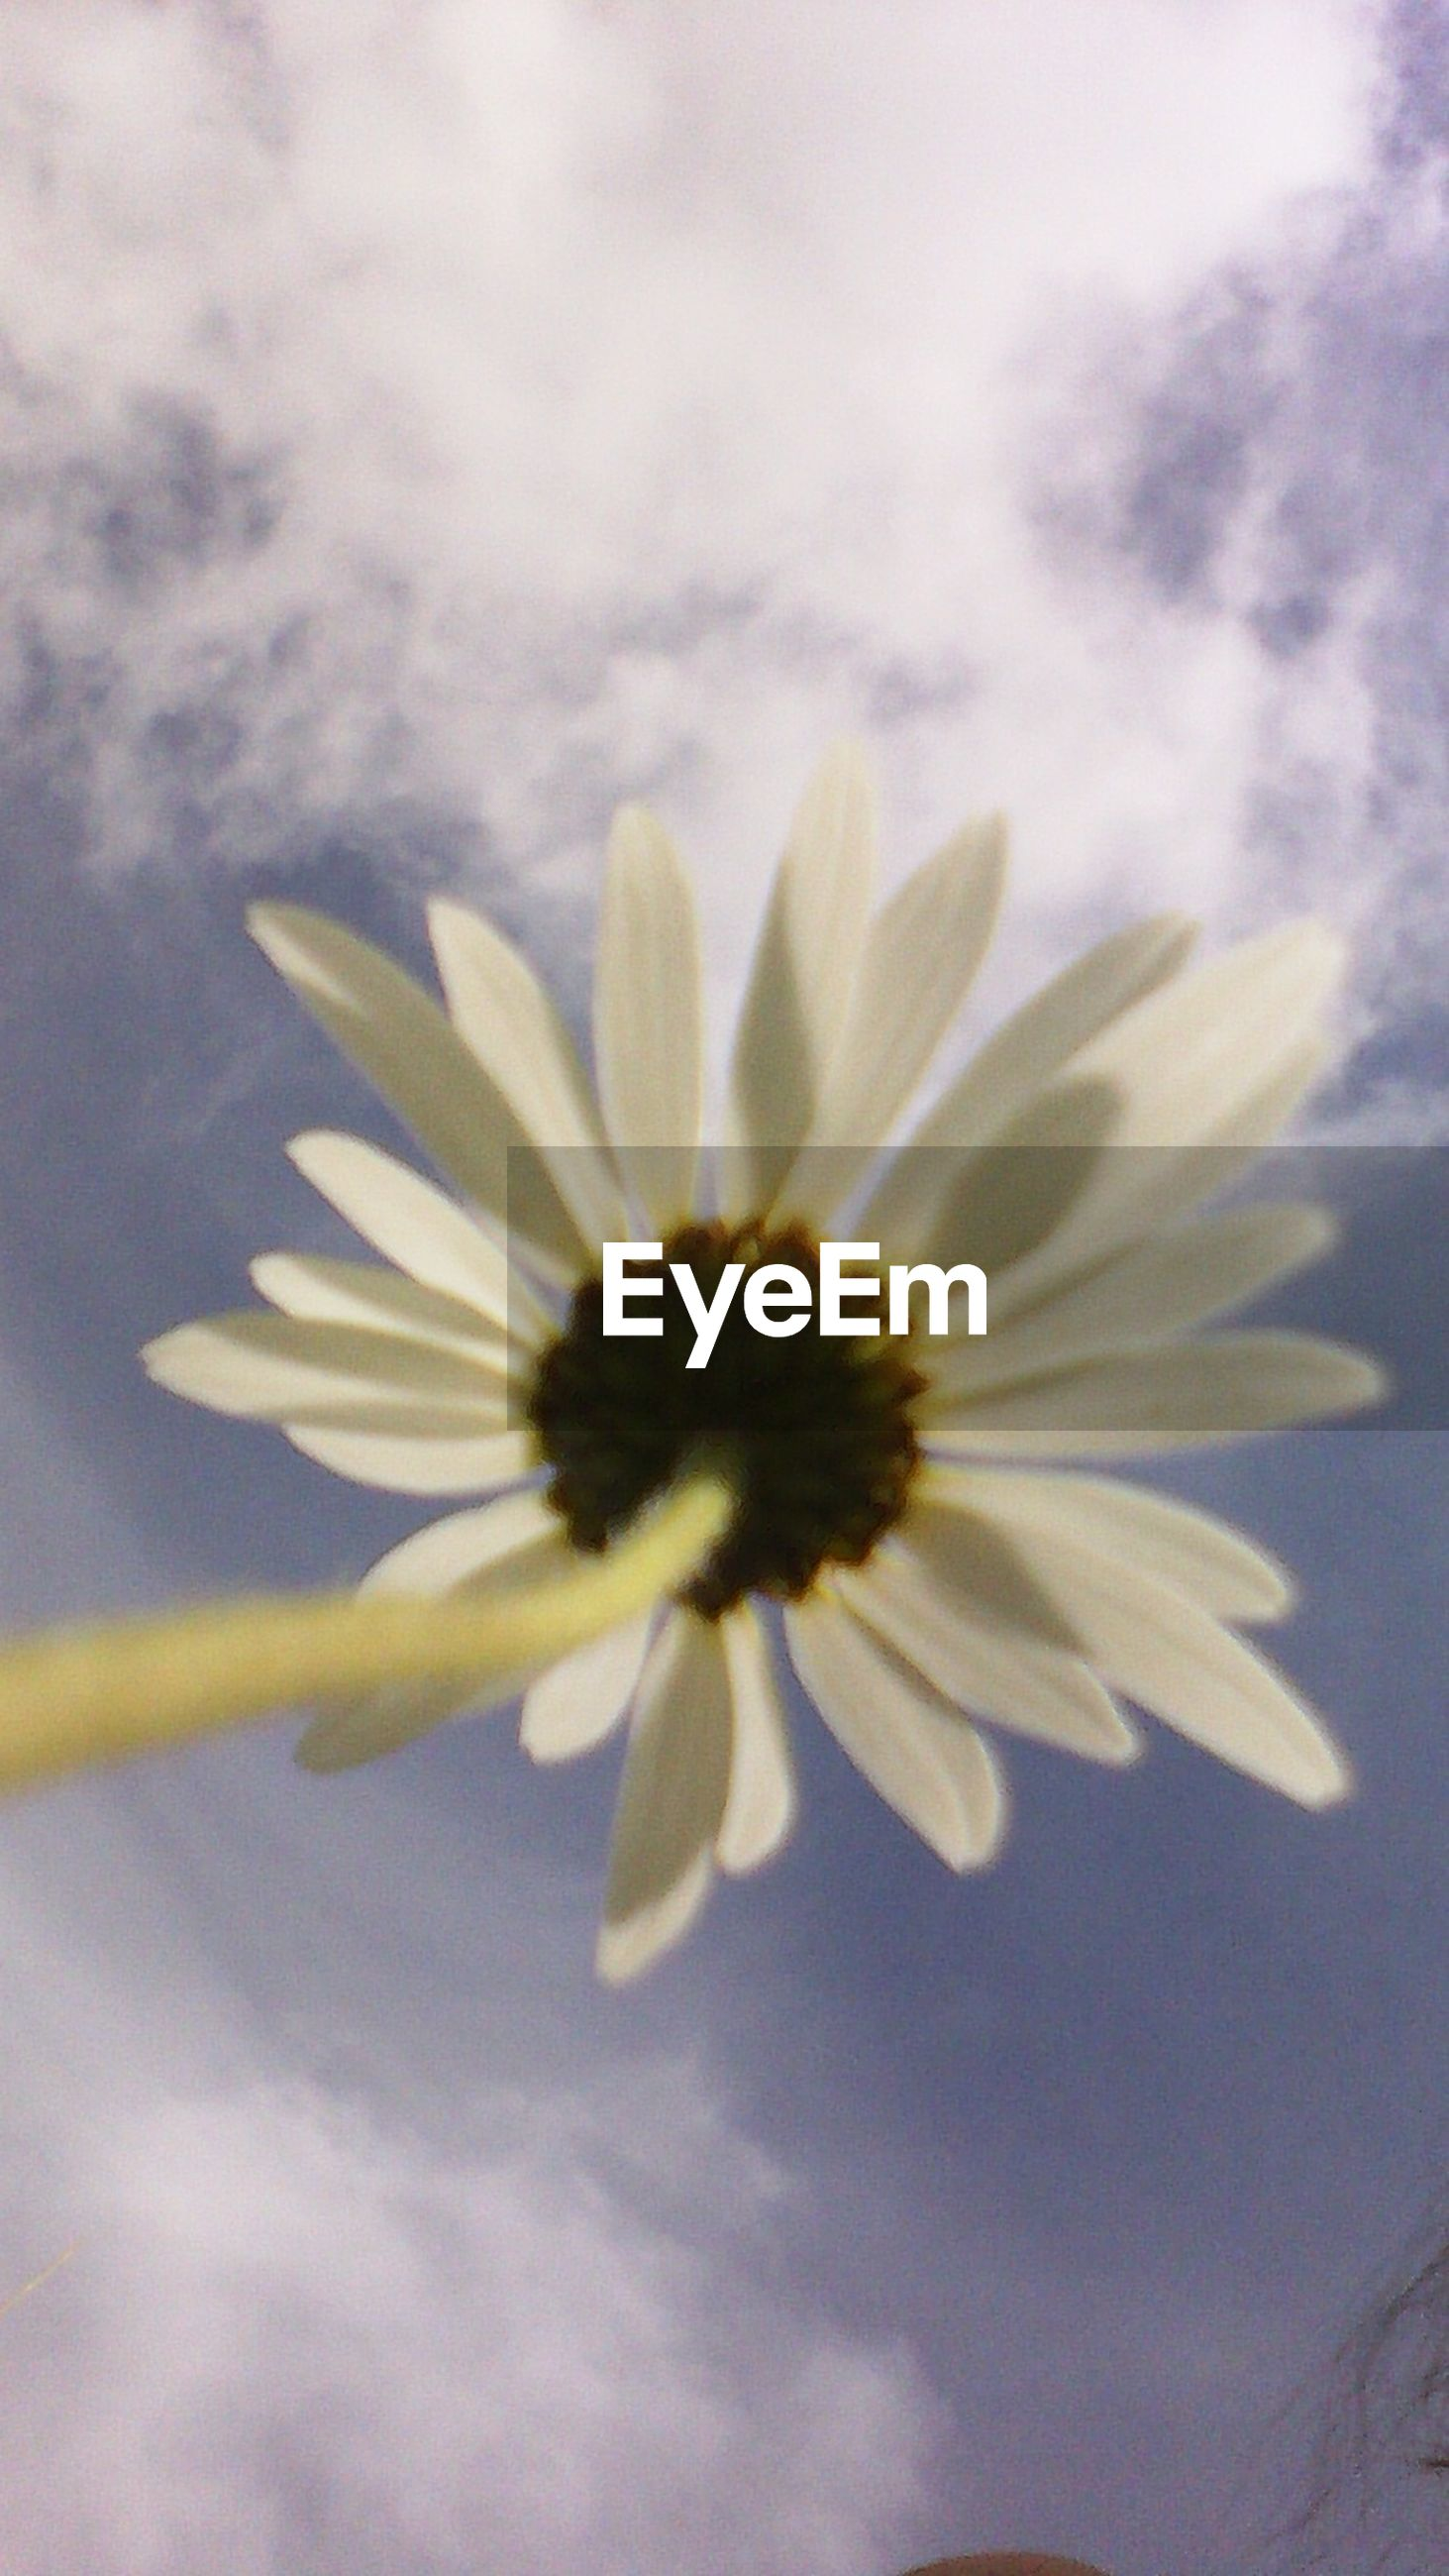 flower, petal, freshness, fragility, flower head, beauty in nature, growth, sky, nature, blooming, pollen, close-up, cloud - sky, single flower, white color, plant, low angle view, focus on foreground, in bloom, outdoors